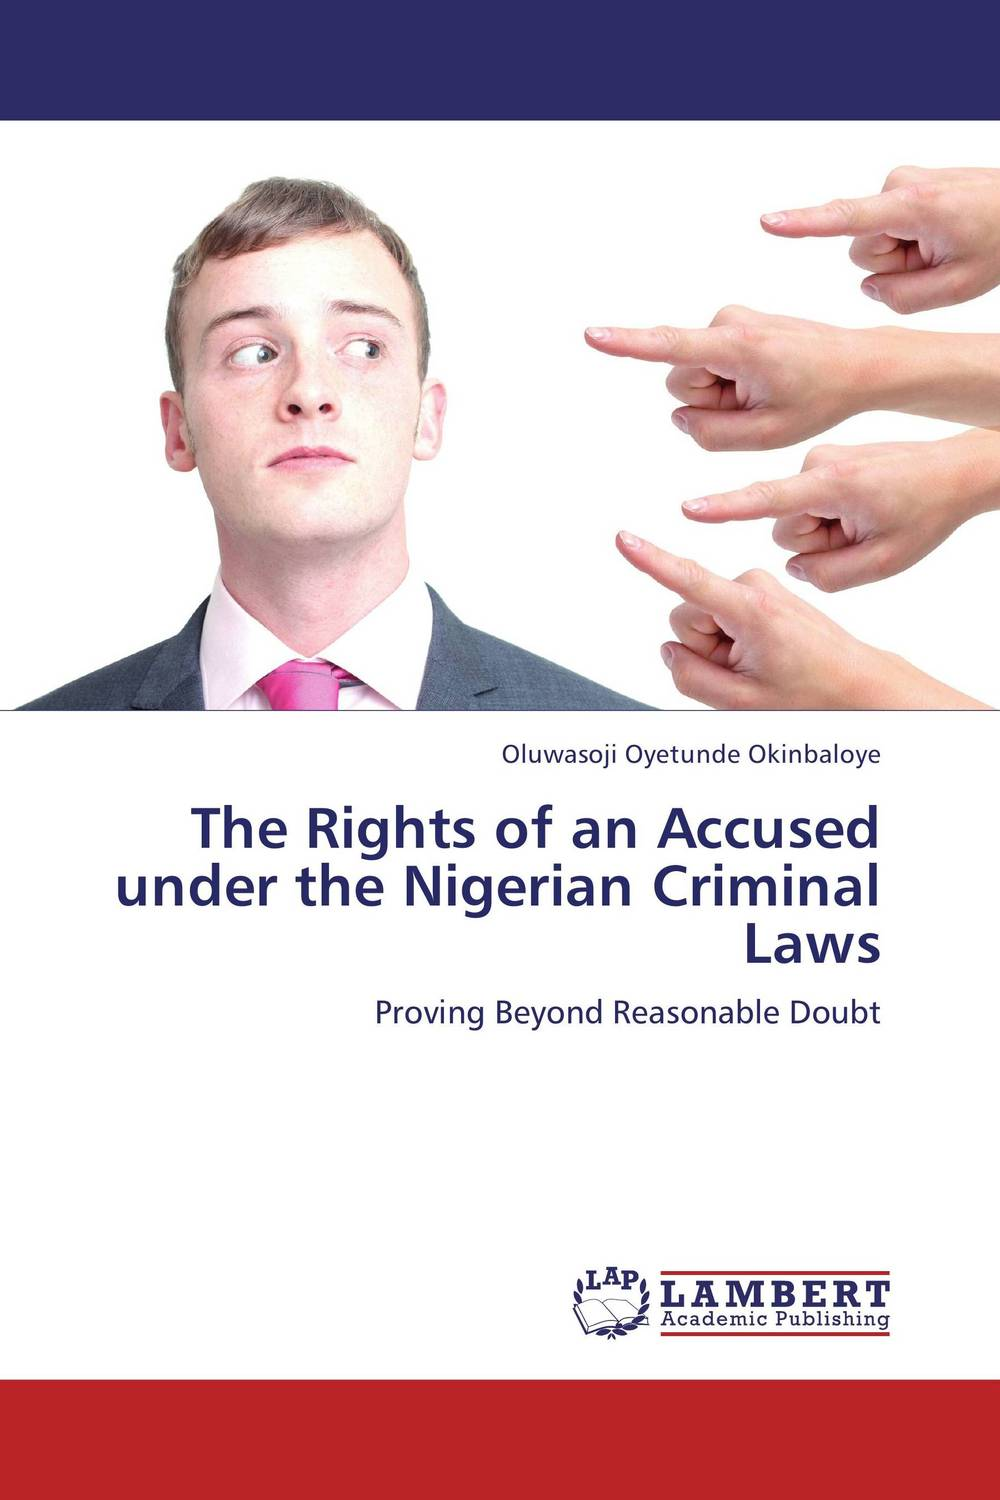 The Rights of an Accused under the Nigerian Criminal Laws tobias h keller telecommunications law under the light of convergence